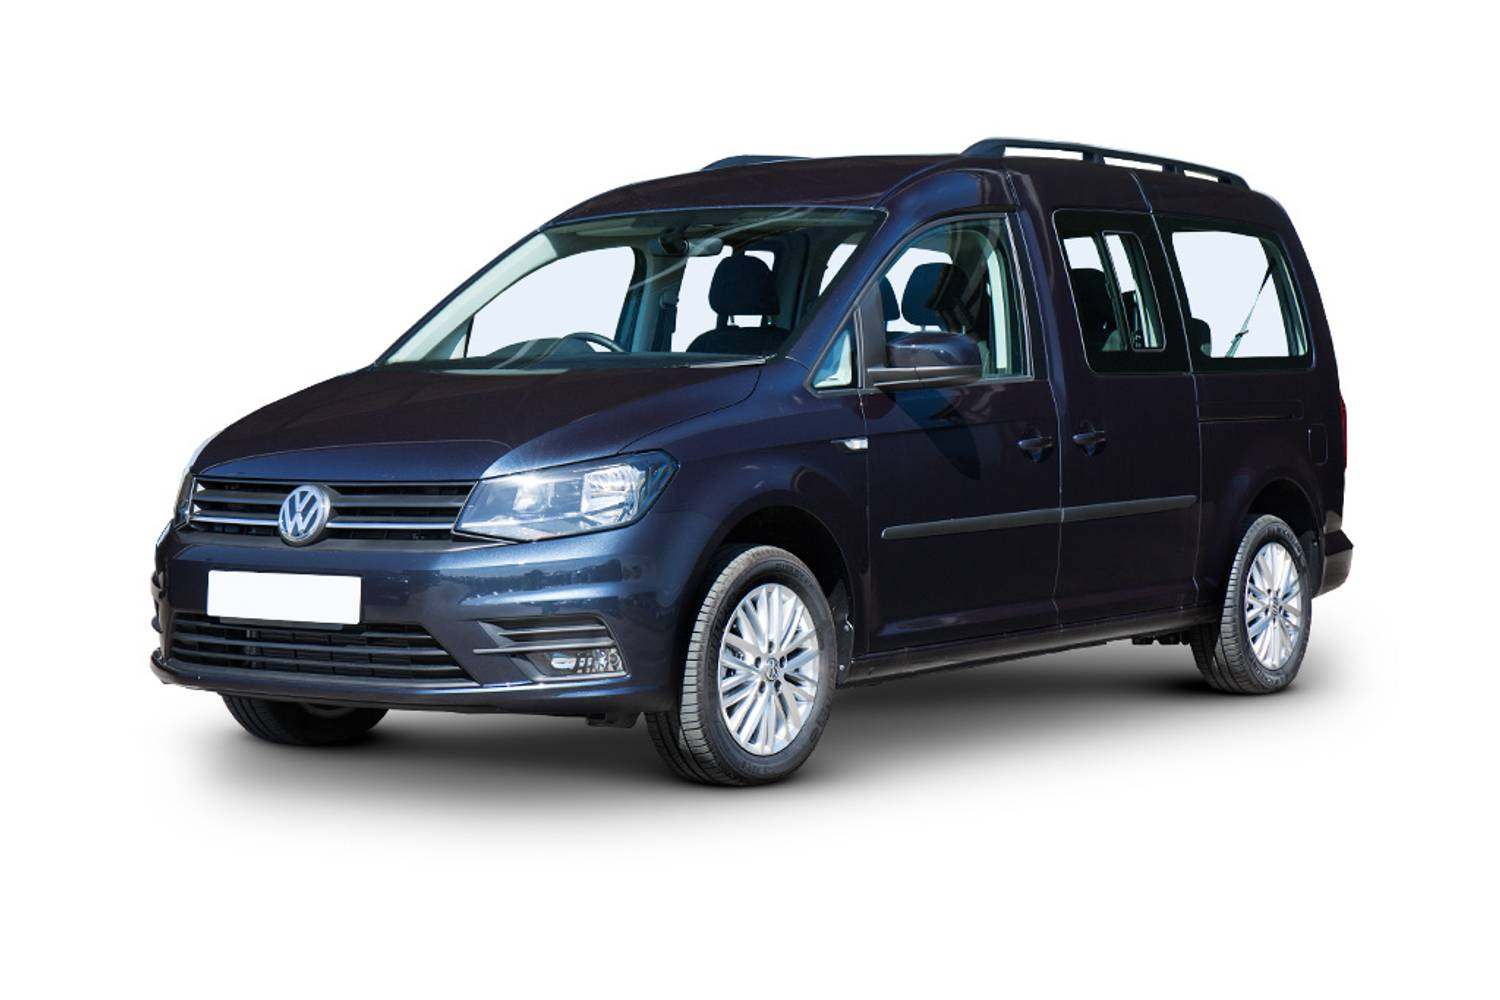 new volkswagen caddy maxi life c20 diesel estate 2 0 tdi 5. Black Bedroom Furniture Sets. Home Design Ideas